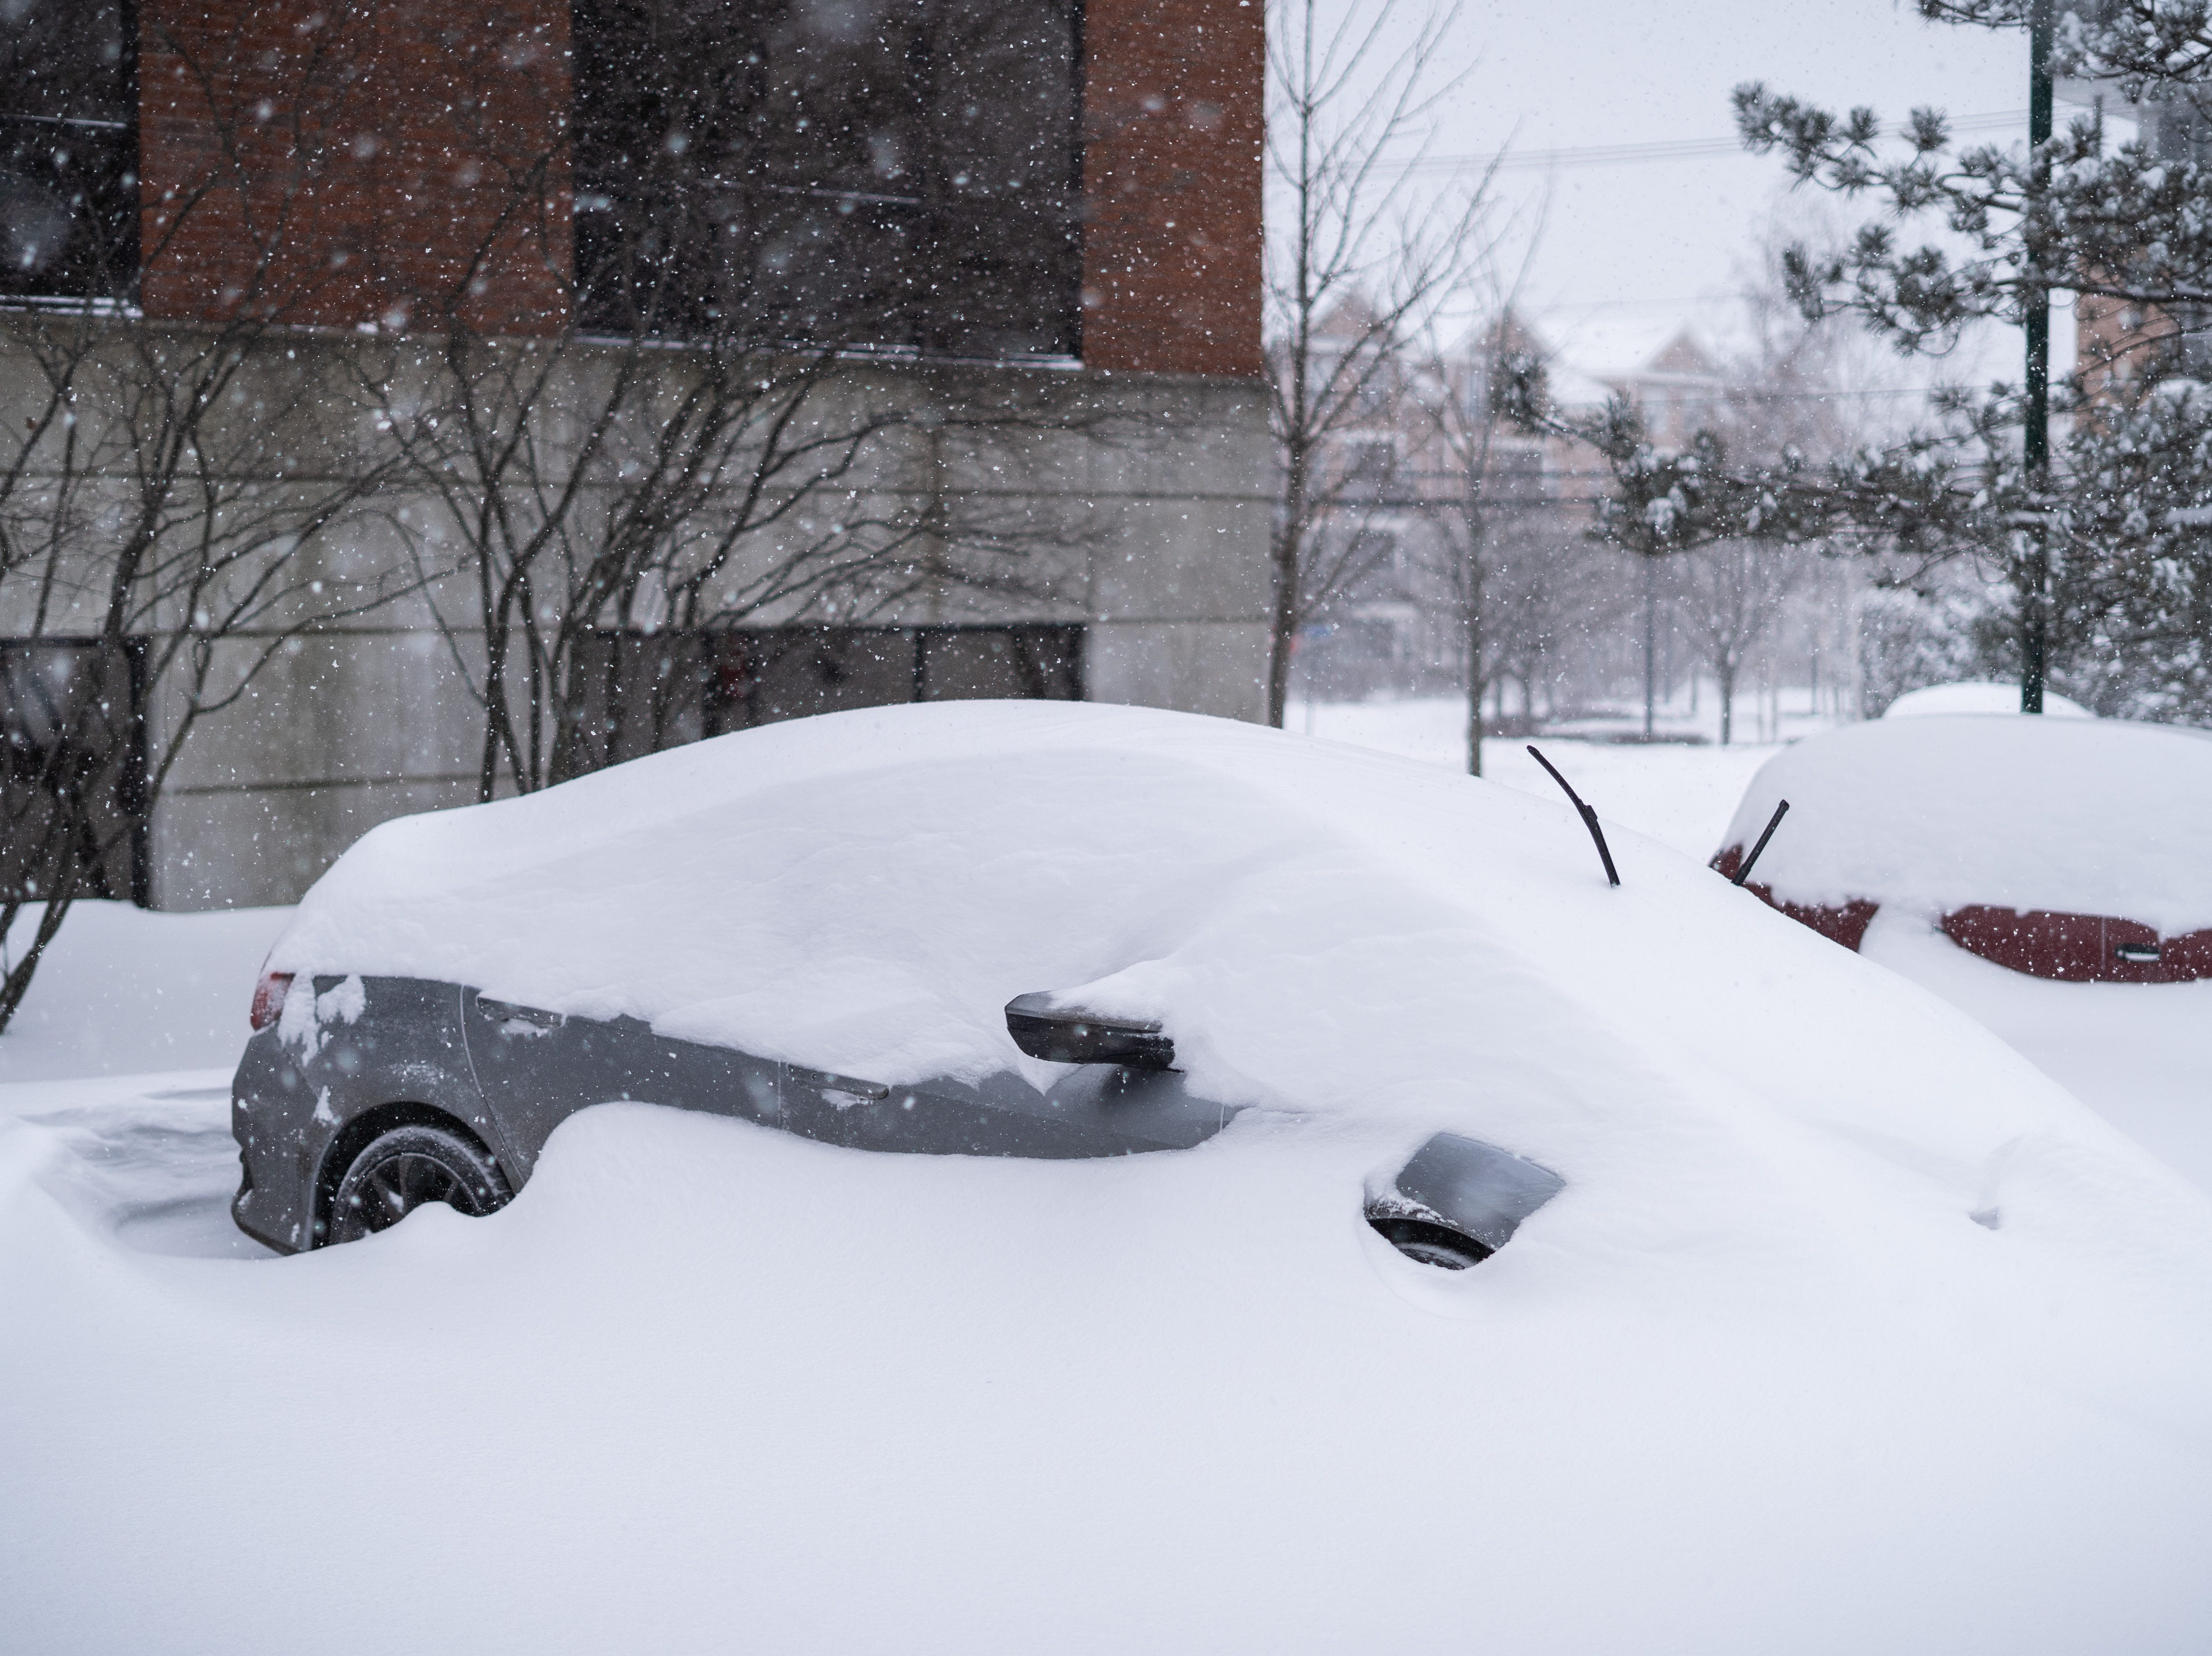 A car has been nearly entirely covered in snow on Sunday afternoon, Jan. 20, 2019, in South Burlington.